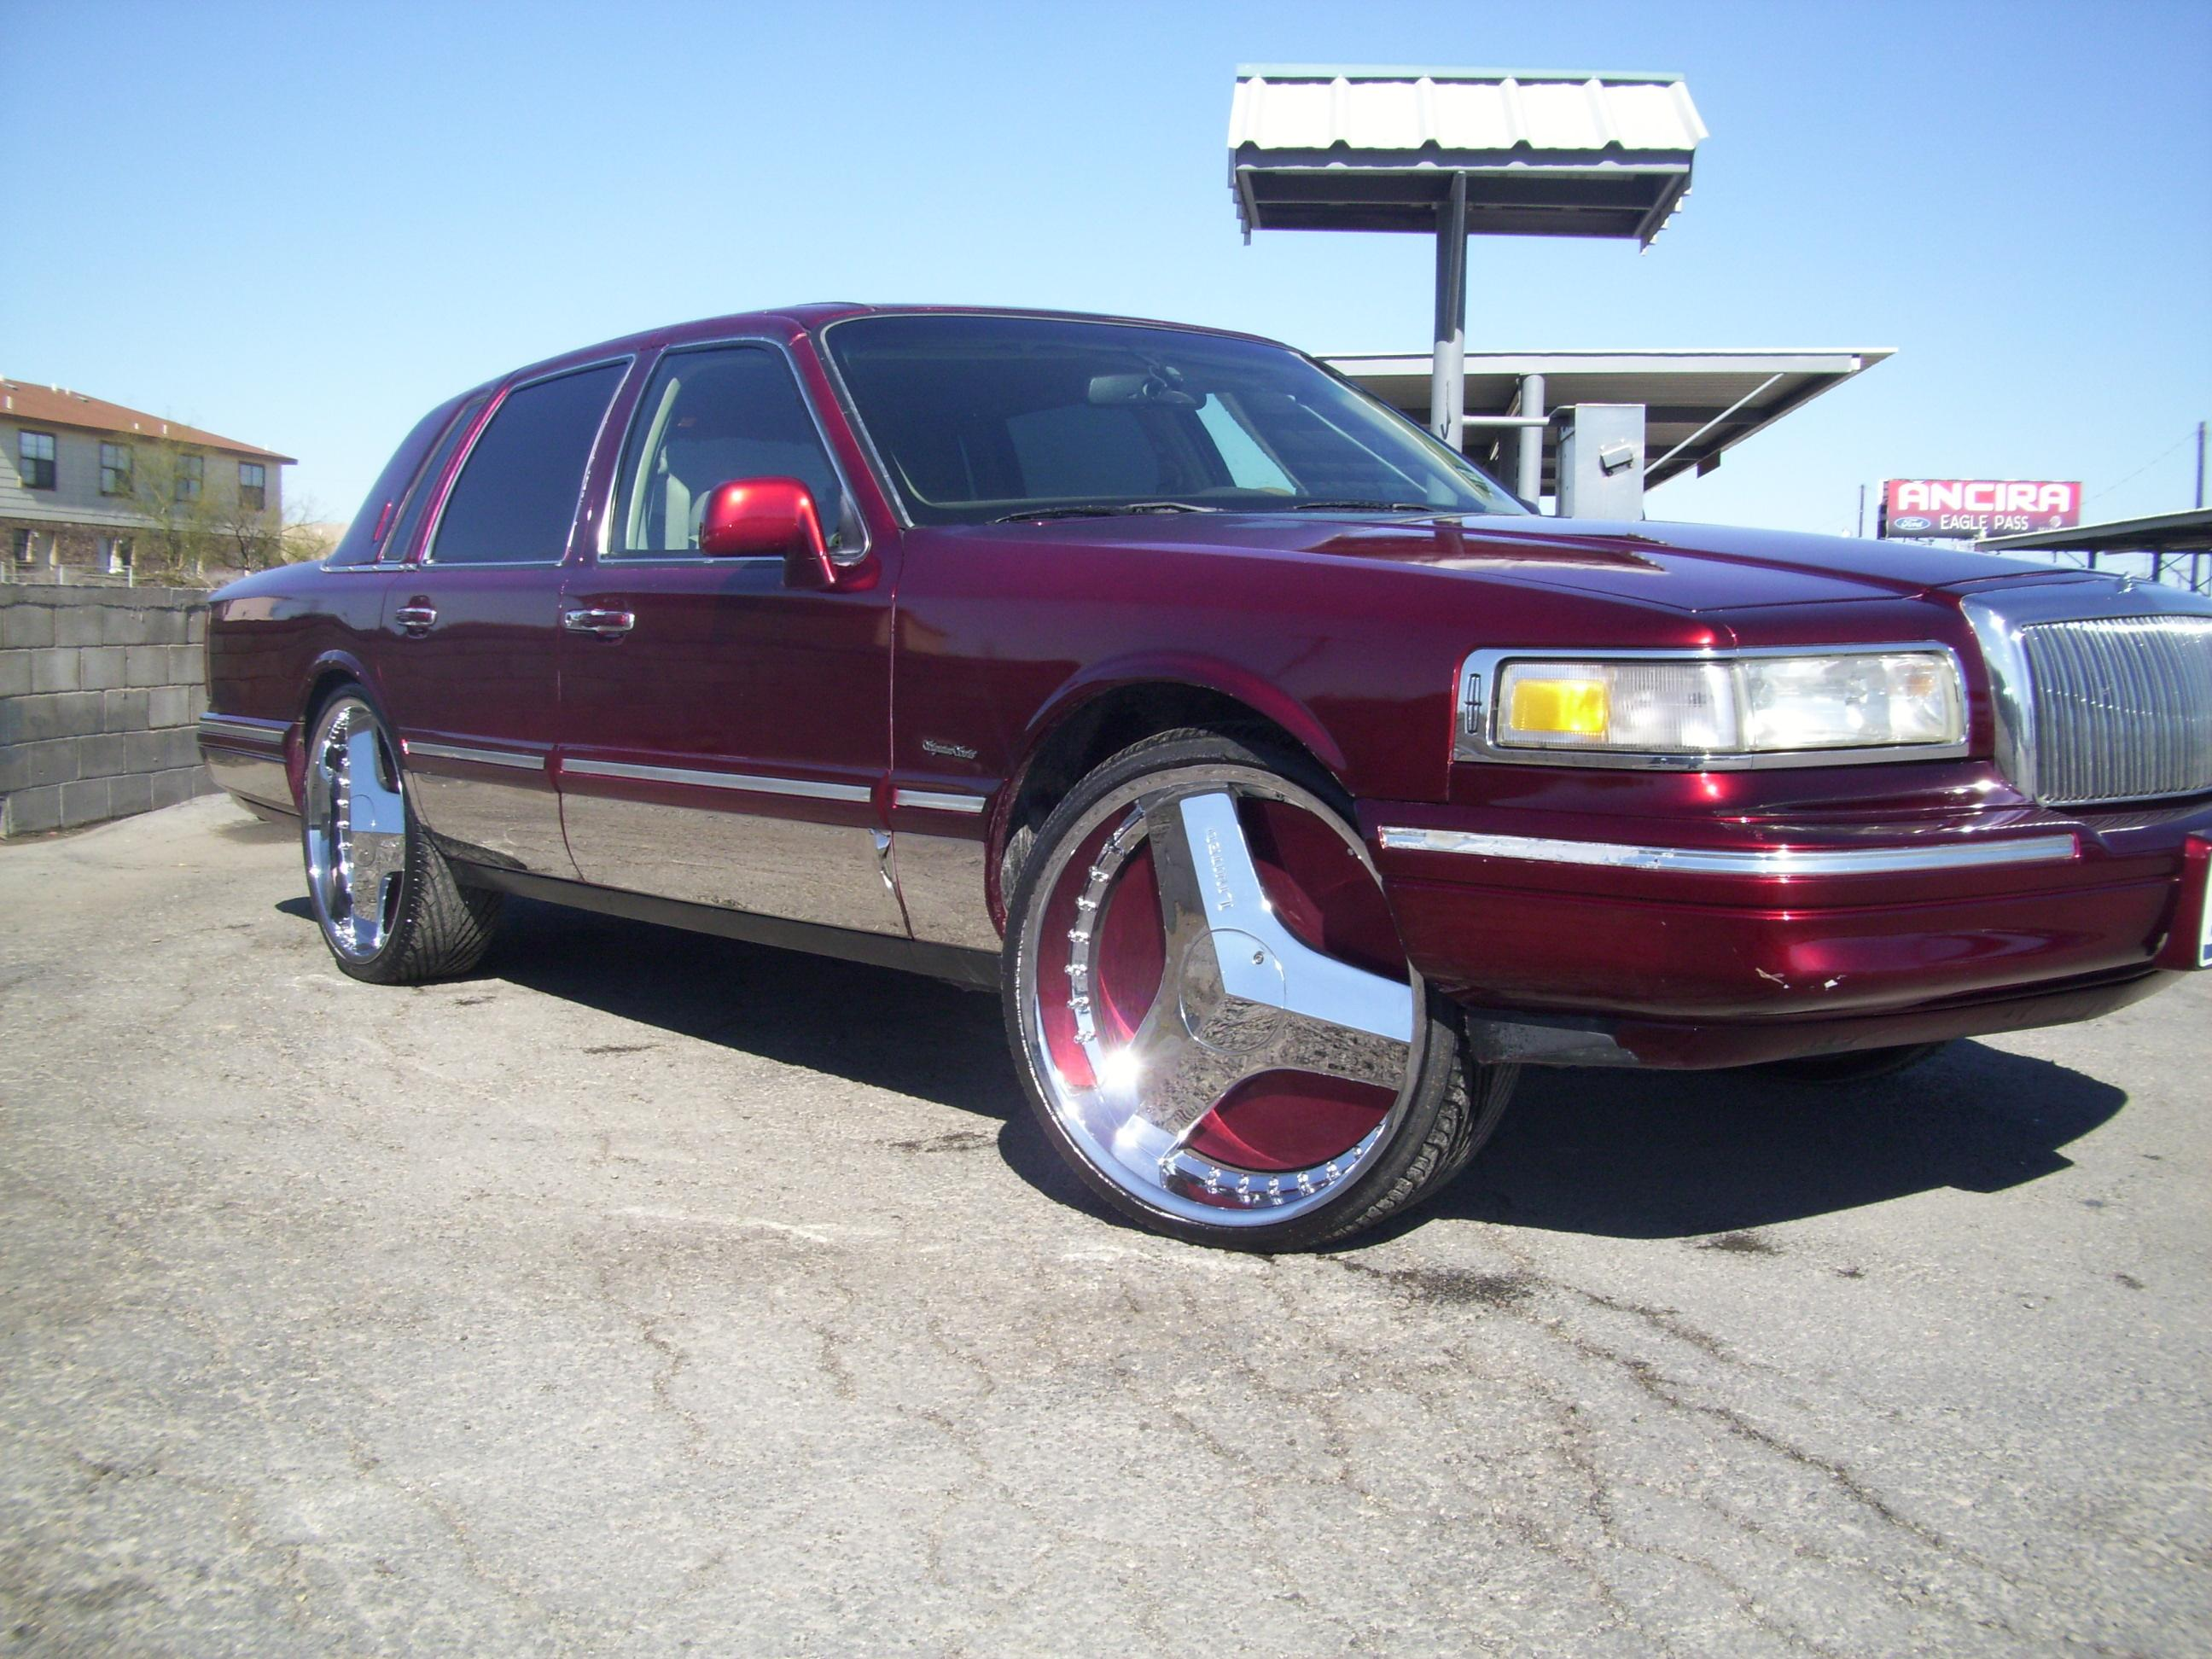 charlieaguilar_9 1997 Lincoln Town Car Specs, Photos, Modification